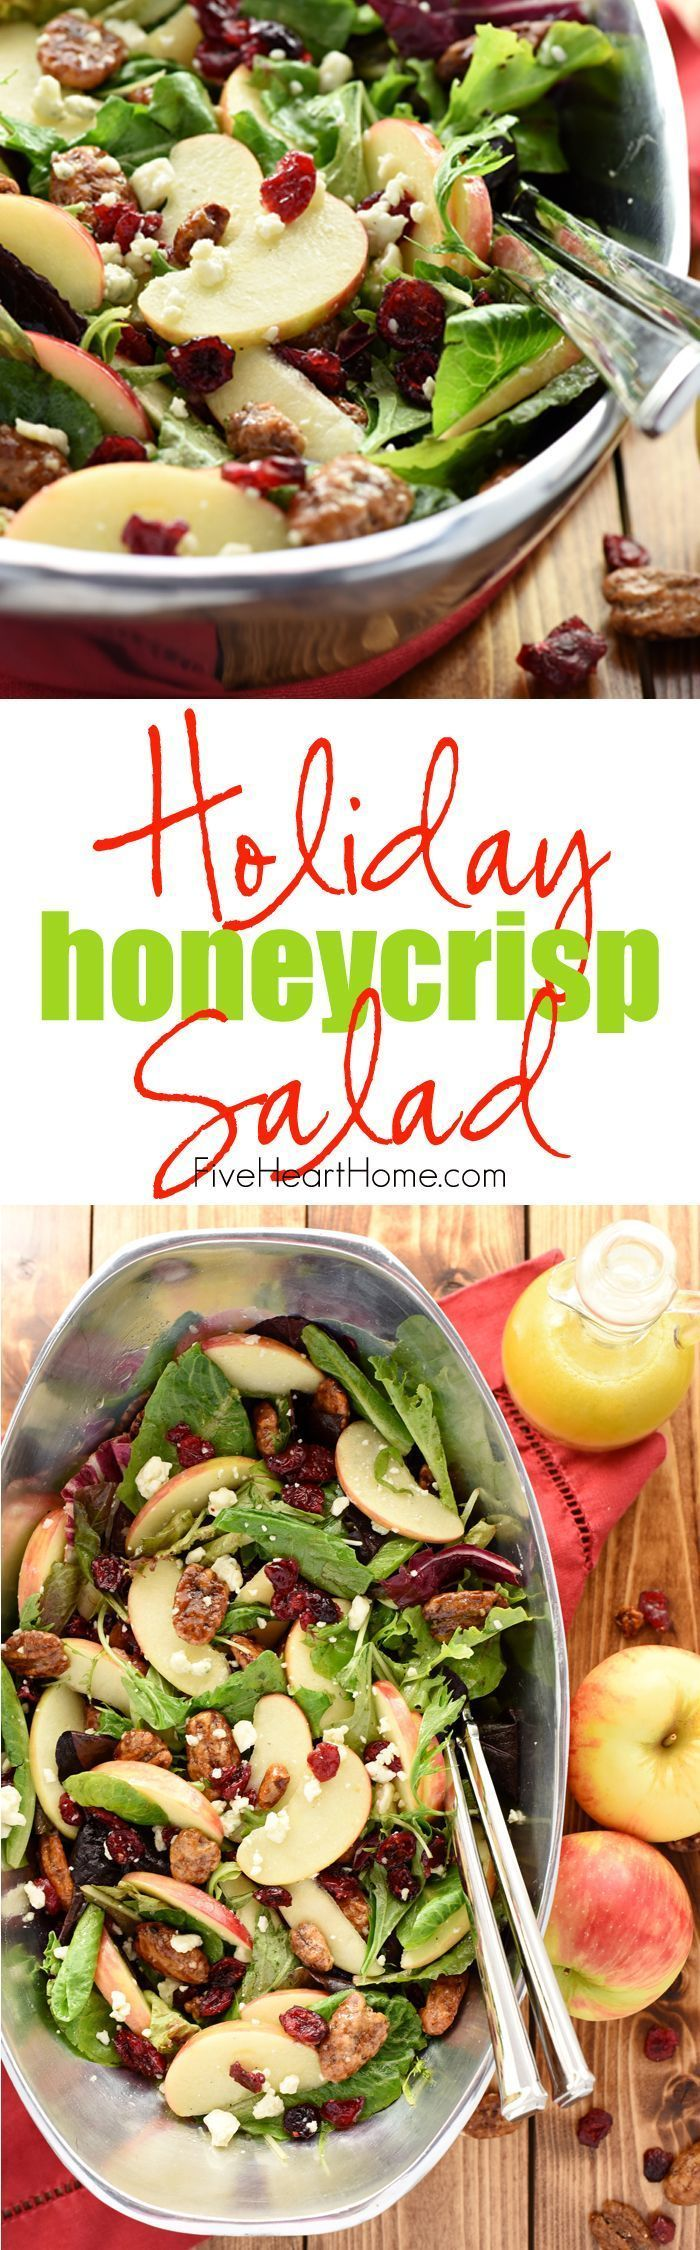 Holiday Honeycrisp Salad - Loaded with fresh apple slices, crunchy candied pecans, chewy dried cranberries, and salty blue cheese, all dressed with a tangy-sweet apple cider vinaigrette. http://www.fivehearthome.com/2015/11/05/holiday-honeycrisp-salad/